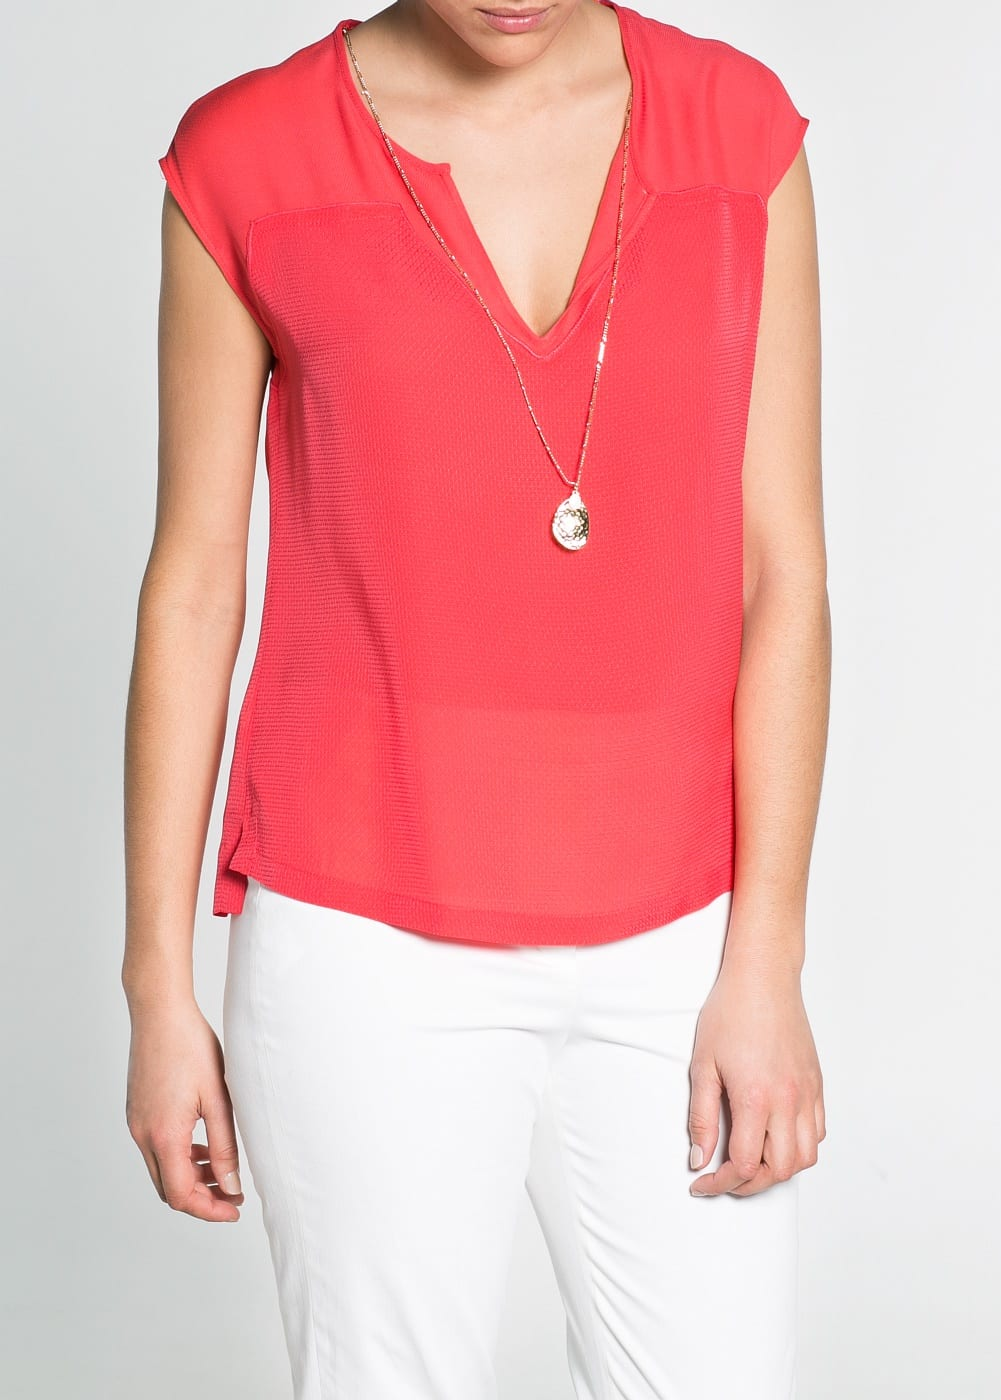 Necklace contrast blouse